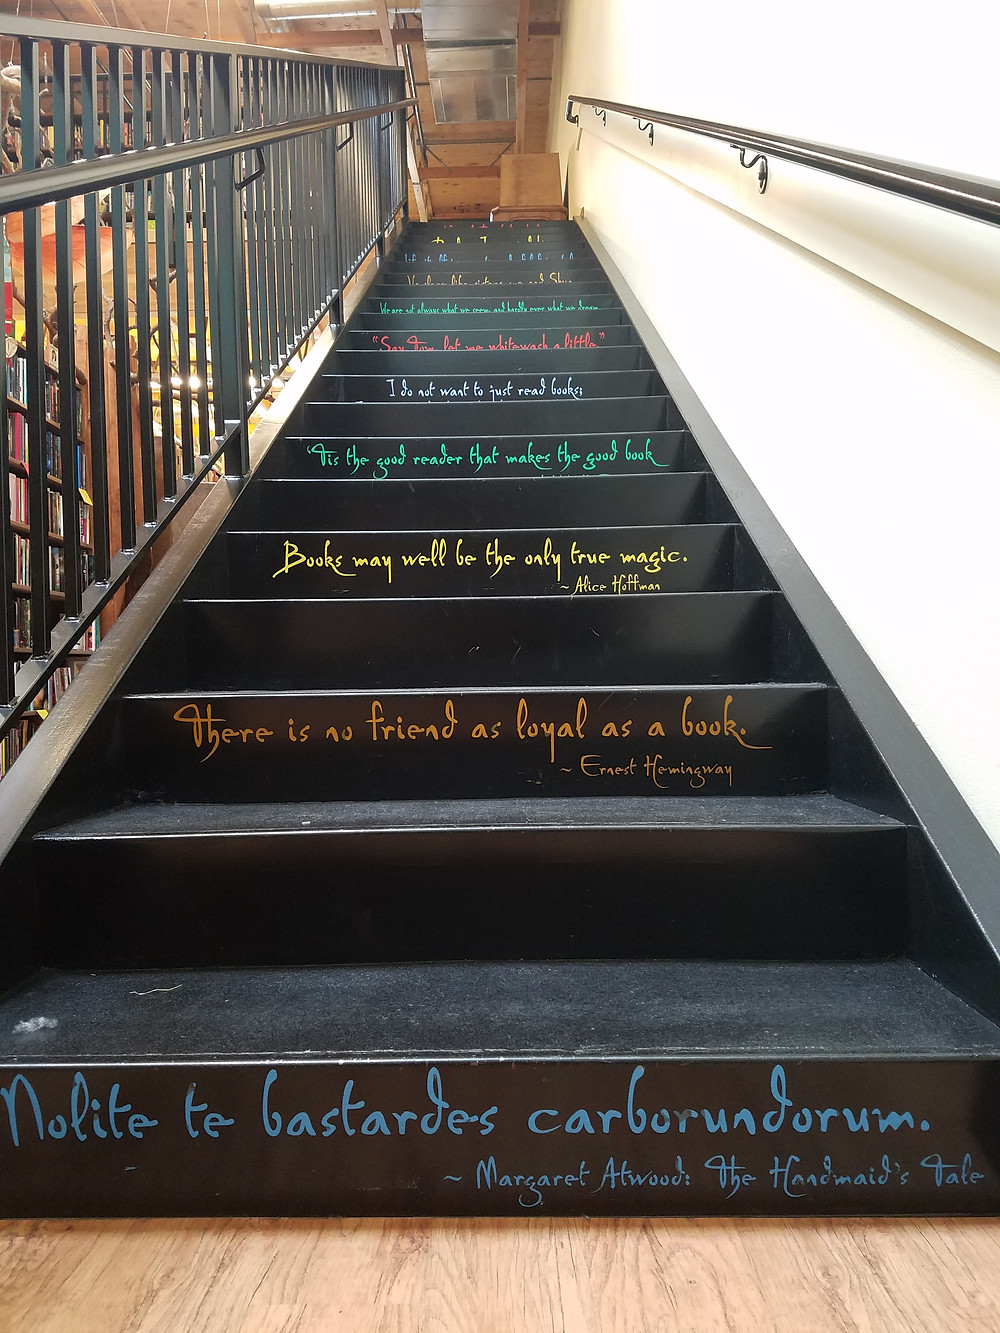 Quotes on every other step